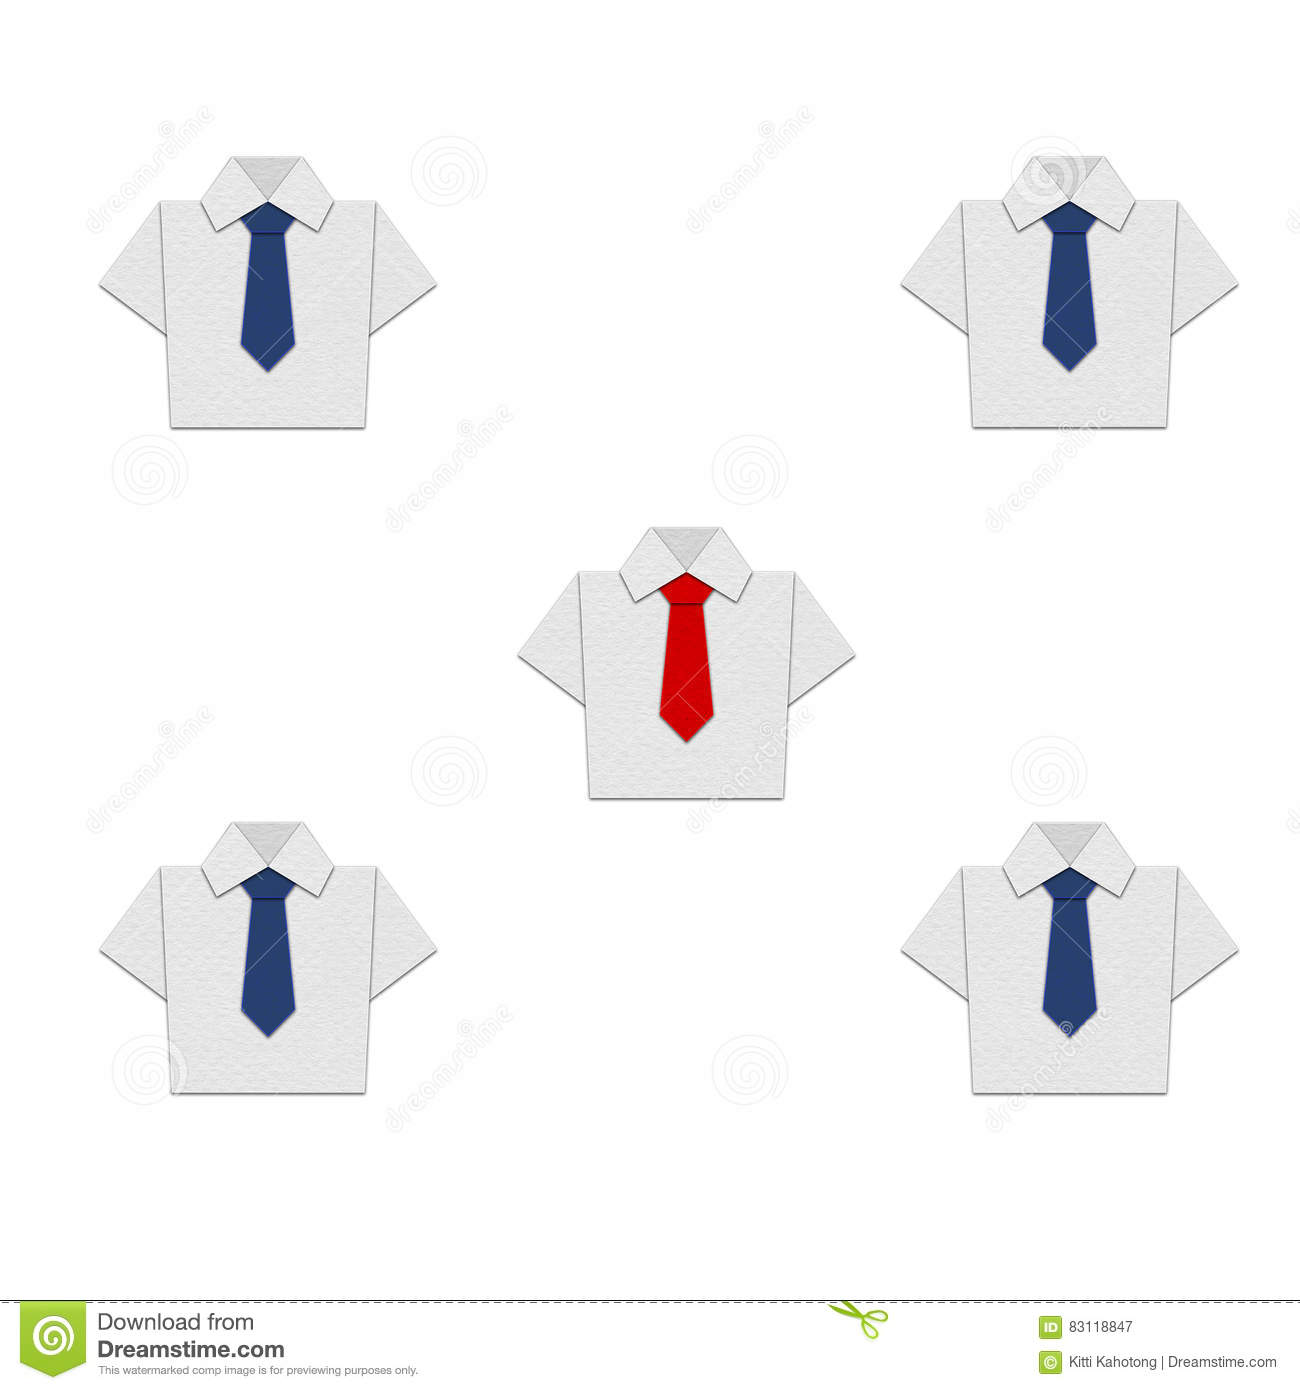 Shirt origami with tie vector design stock illustration shirt origami with tie vector design jeuxipadfo Gallery